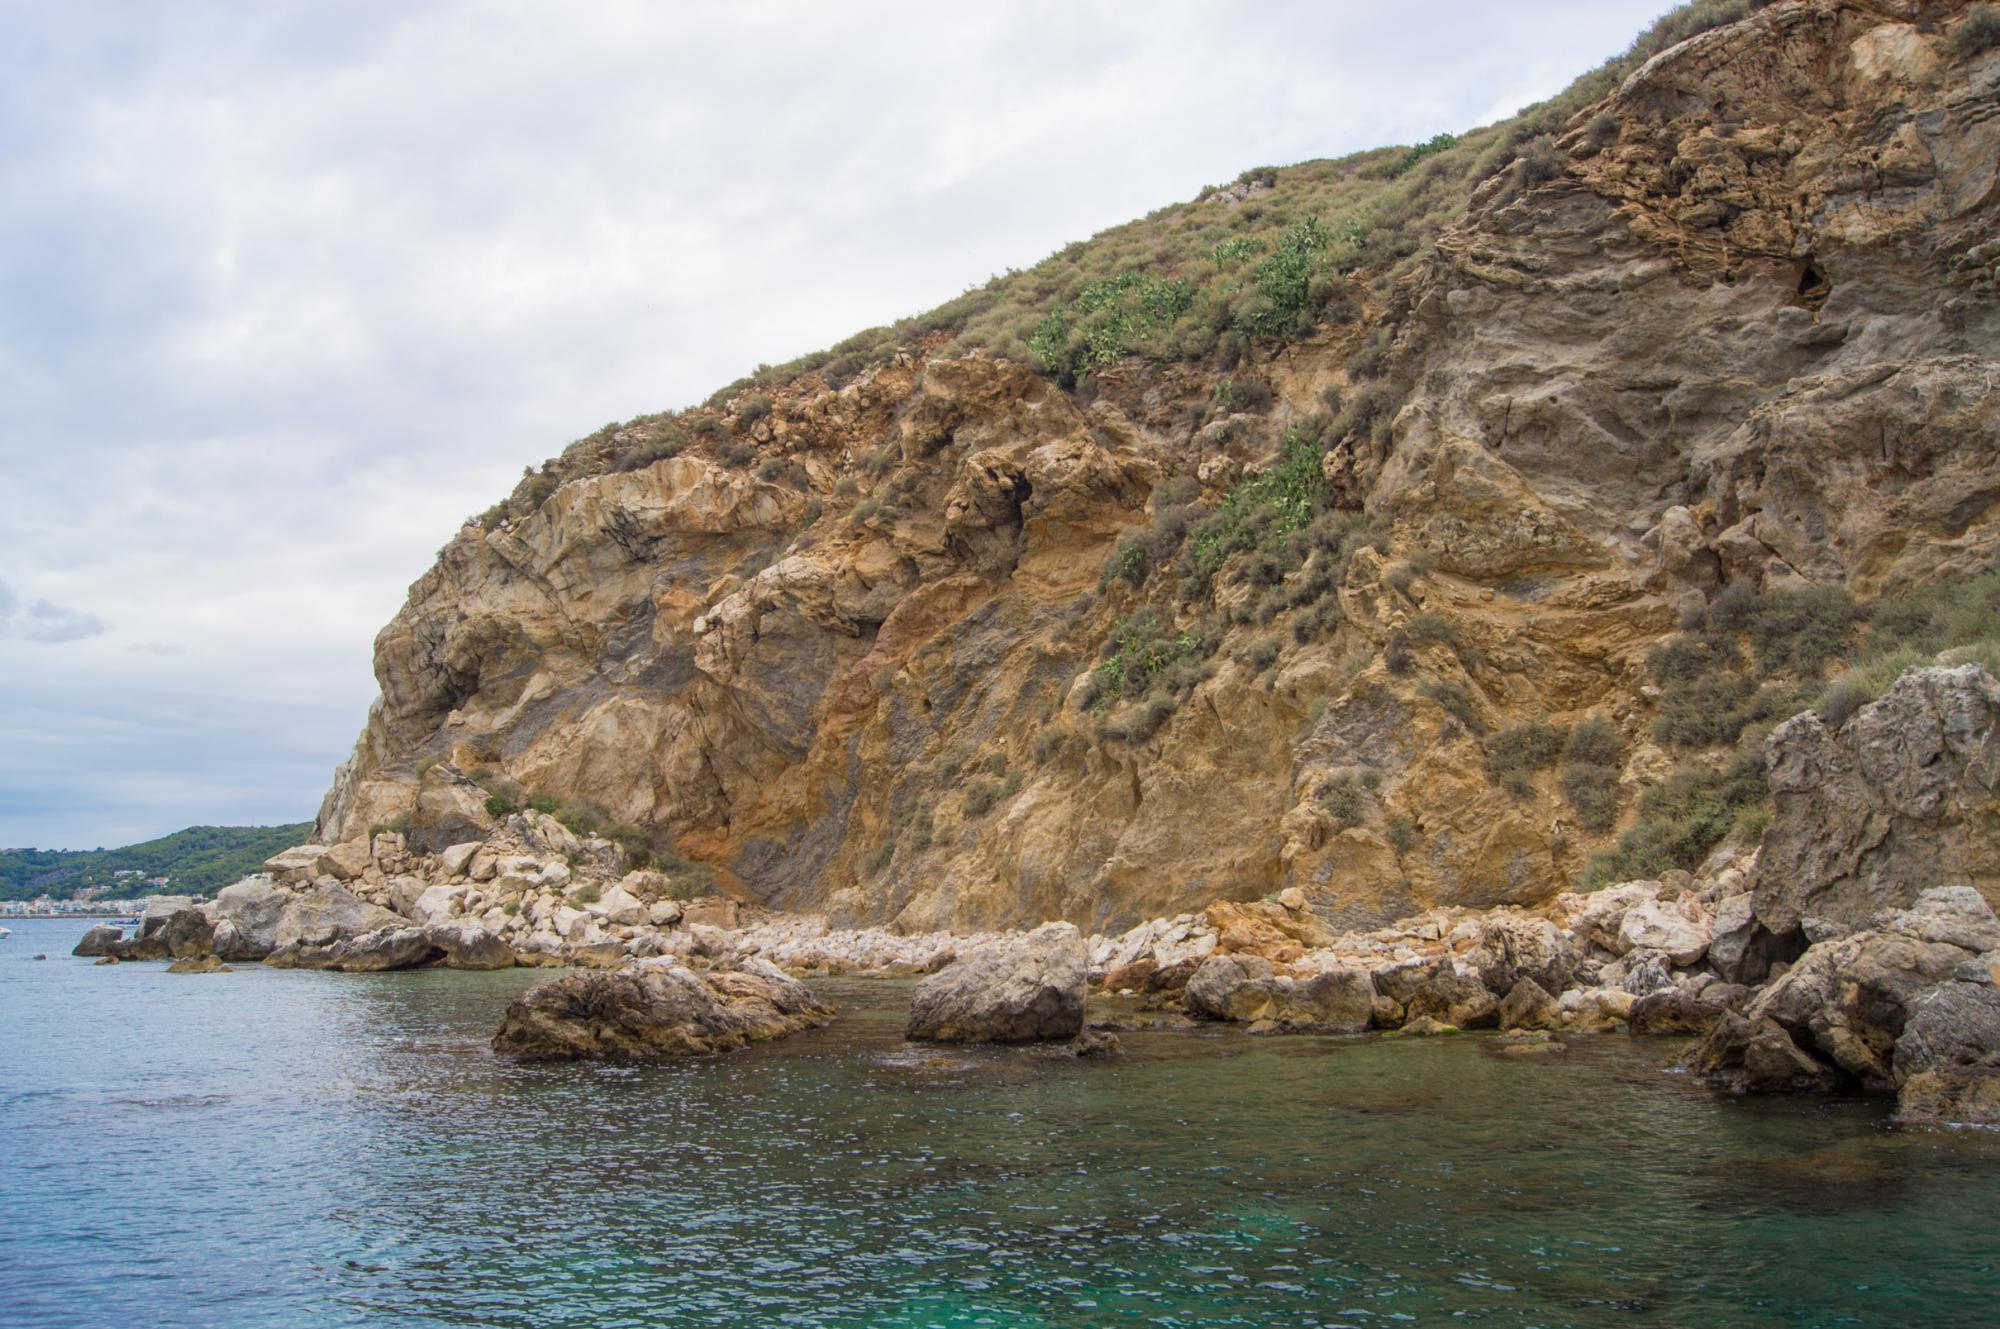 Rocks in the Mediterranean Sea near the town of Estartit, located on the Costa Brava